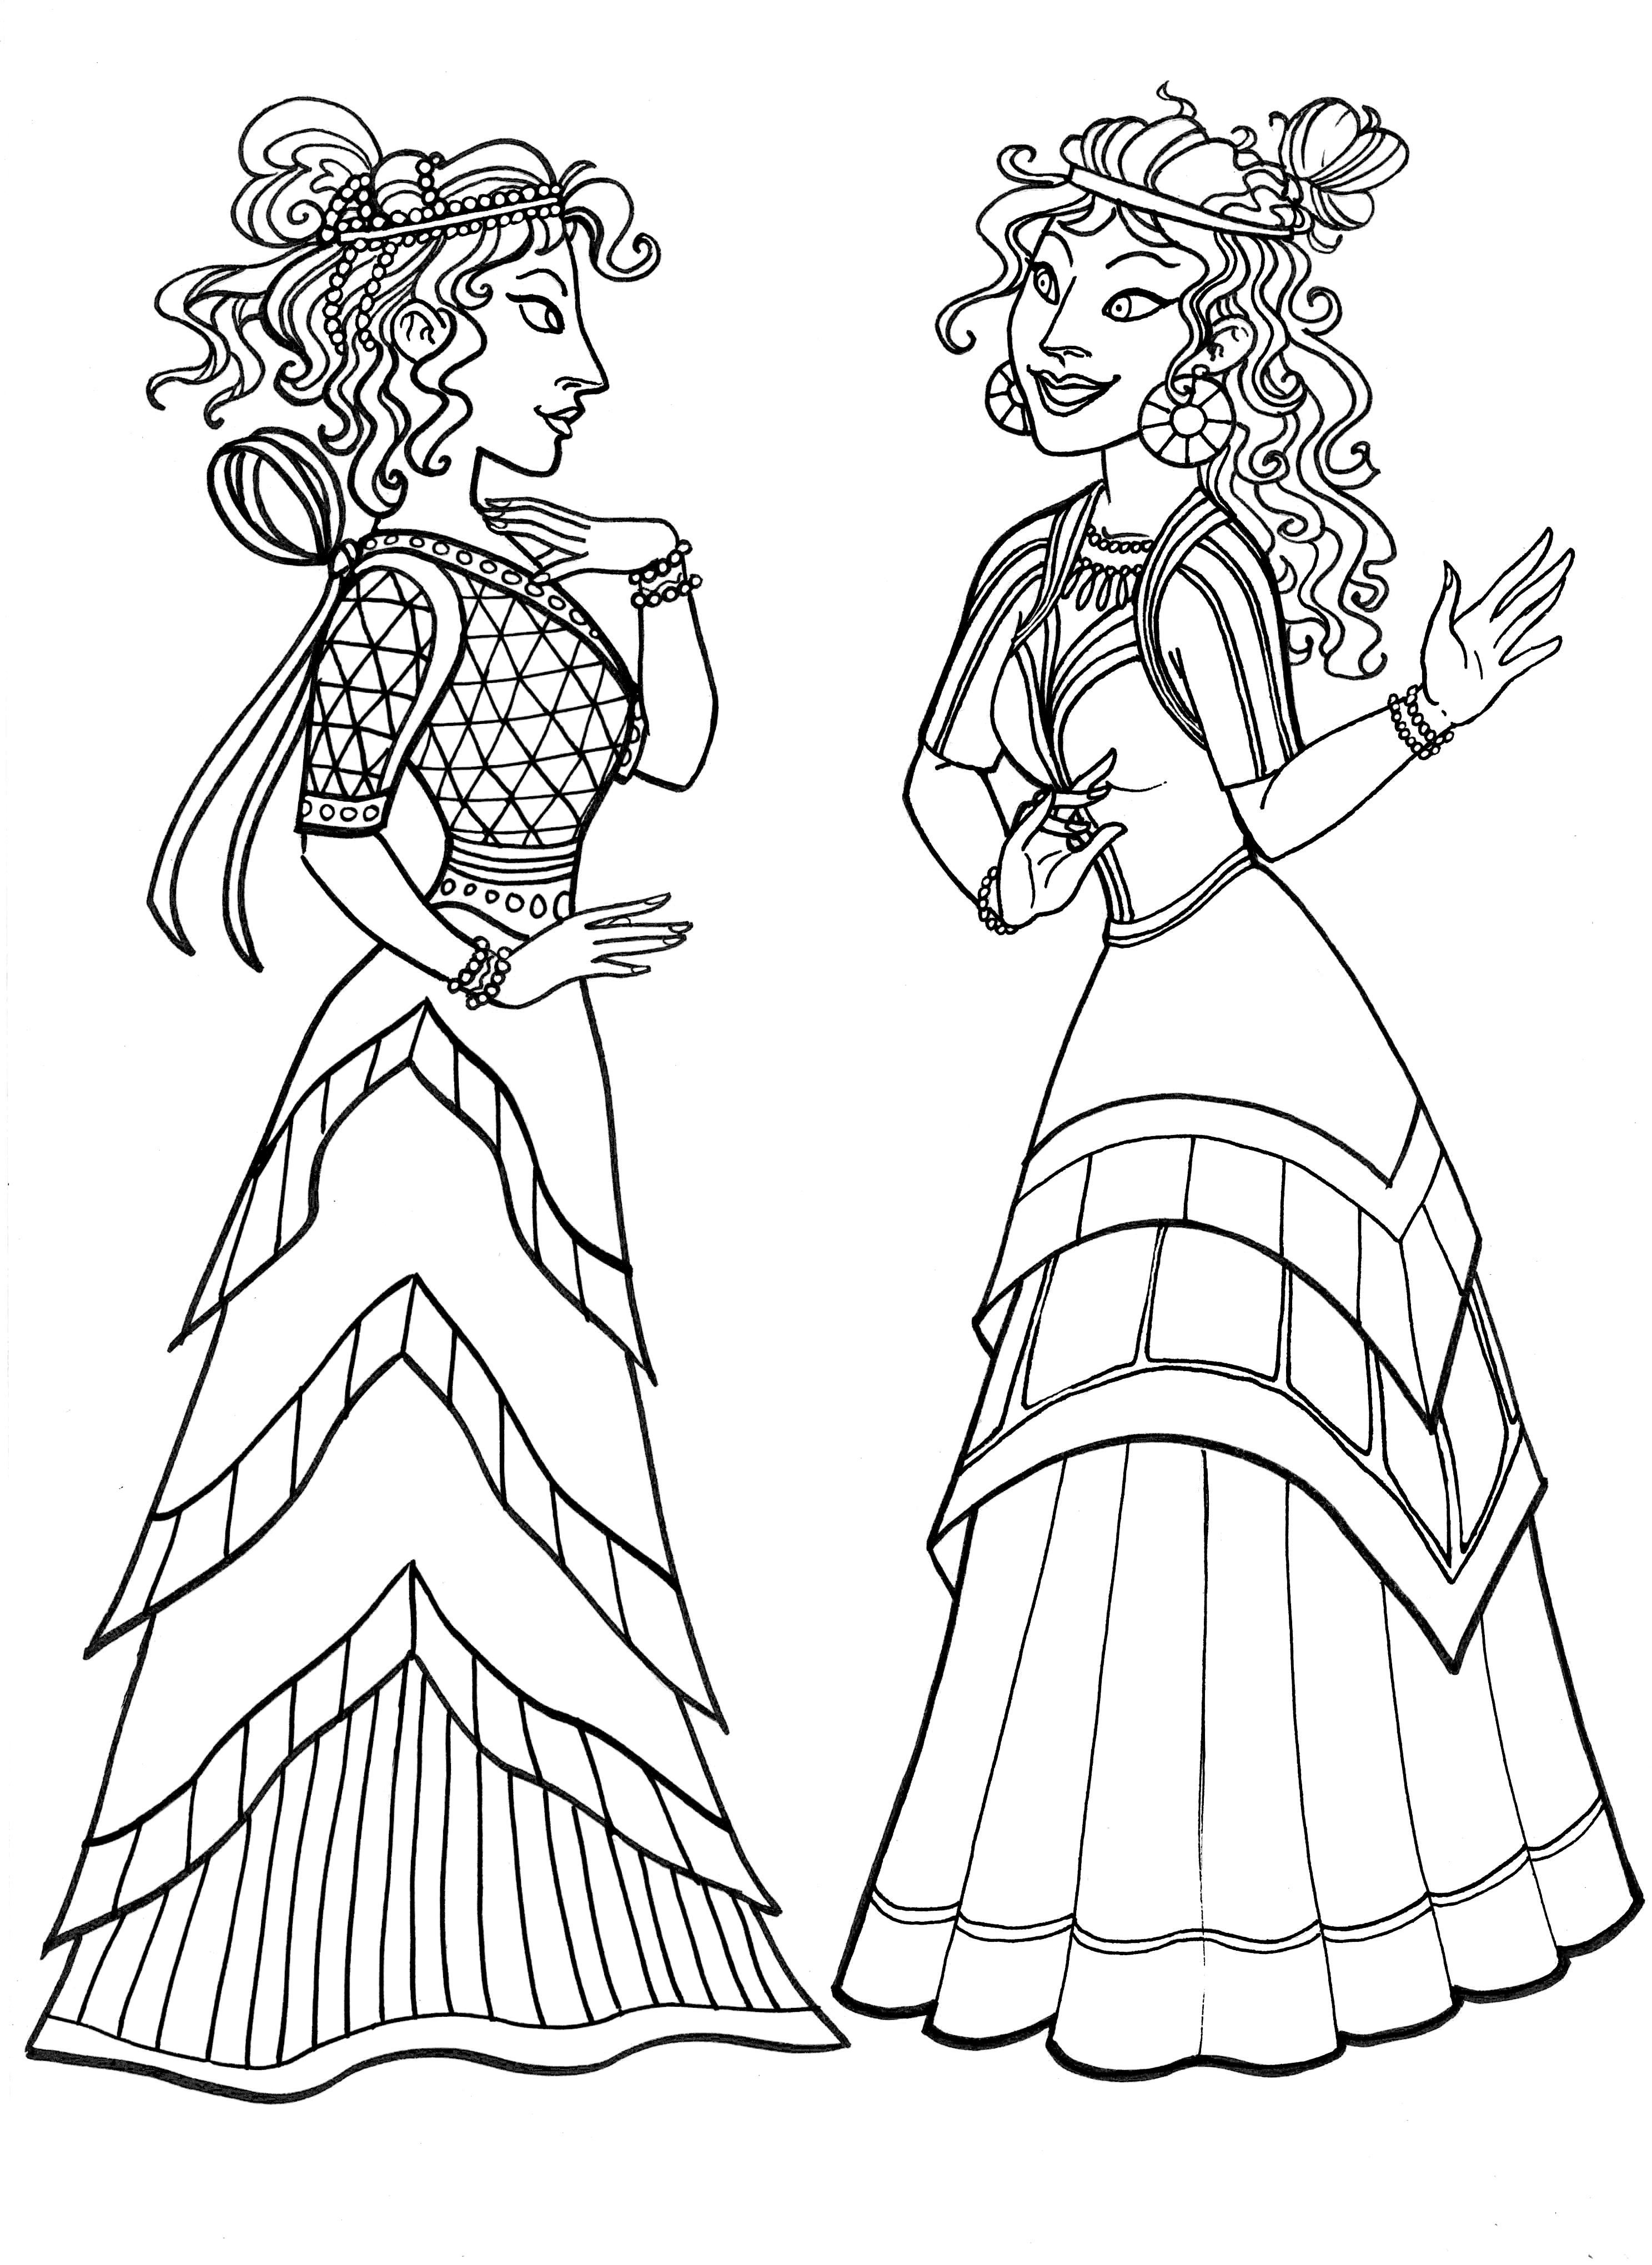 Fish Coloring Pages further Bedroom 20clipart 20outline furthermore Shorts Image To Color 323 likewise Stock Illustration Stylized Goddess Ishtar Character Sumerian Mythology Full Growth Vector Illustration Black Silhouette Isolated White Image72816265 additionally How To Draw A Manga Fairy Step By Step. on clothes coloring pages